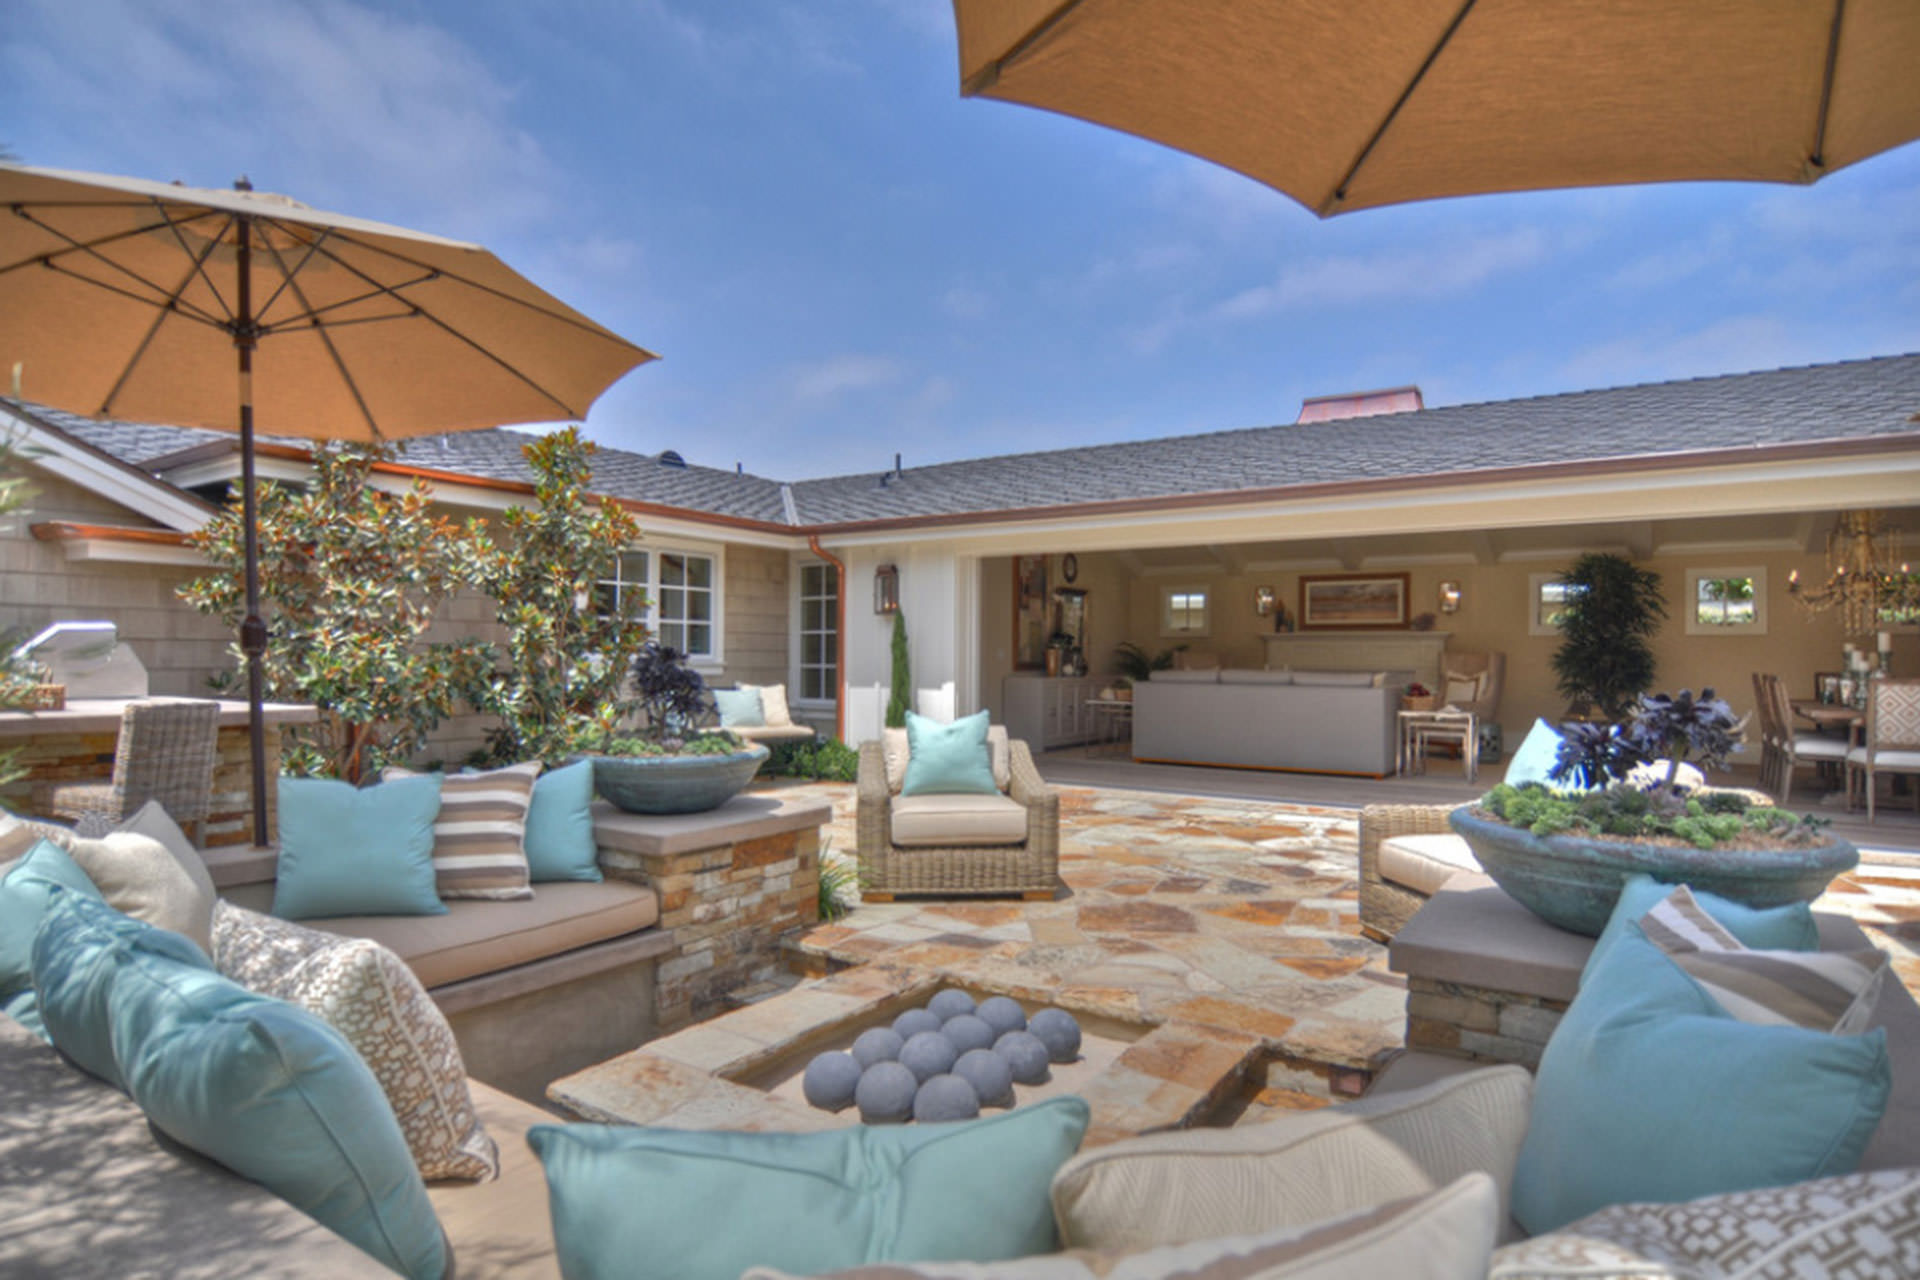 The Complete Guide to Patio Materials on Backyard Patios  id=50713